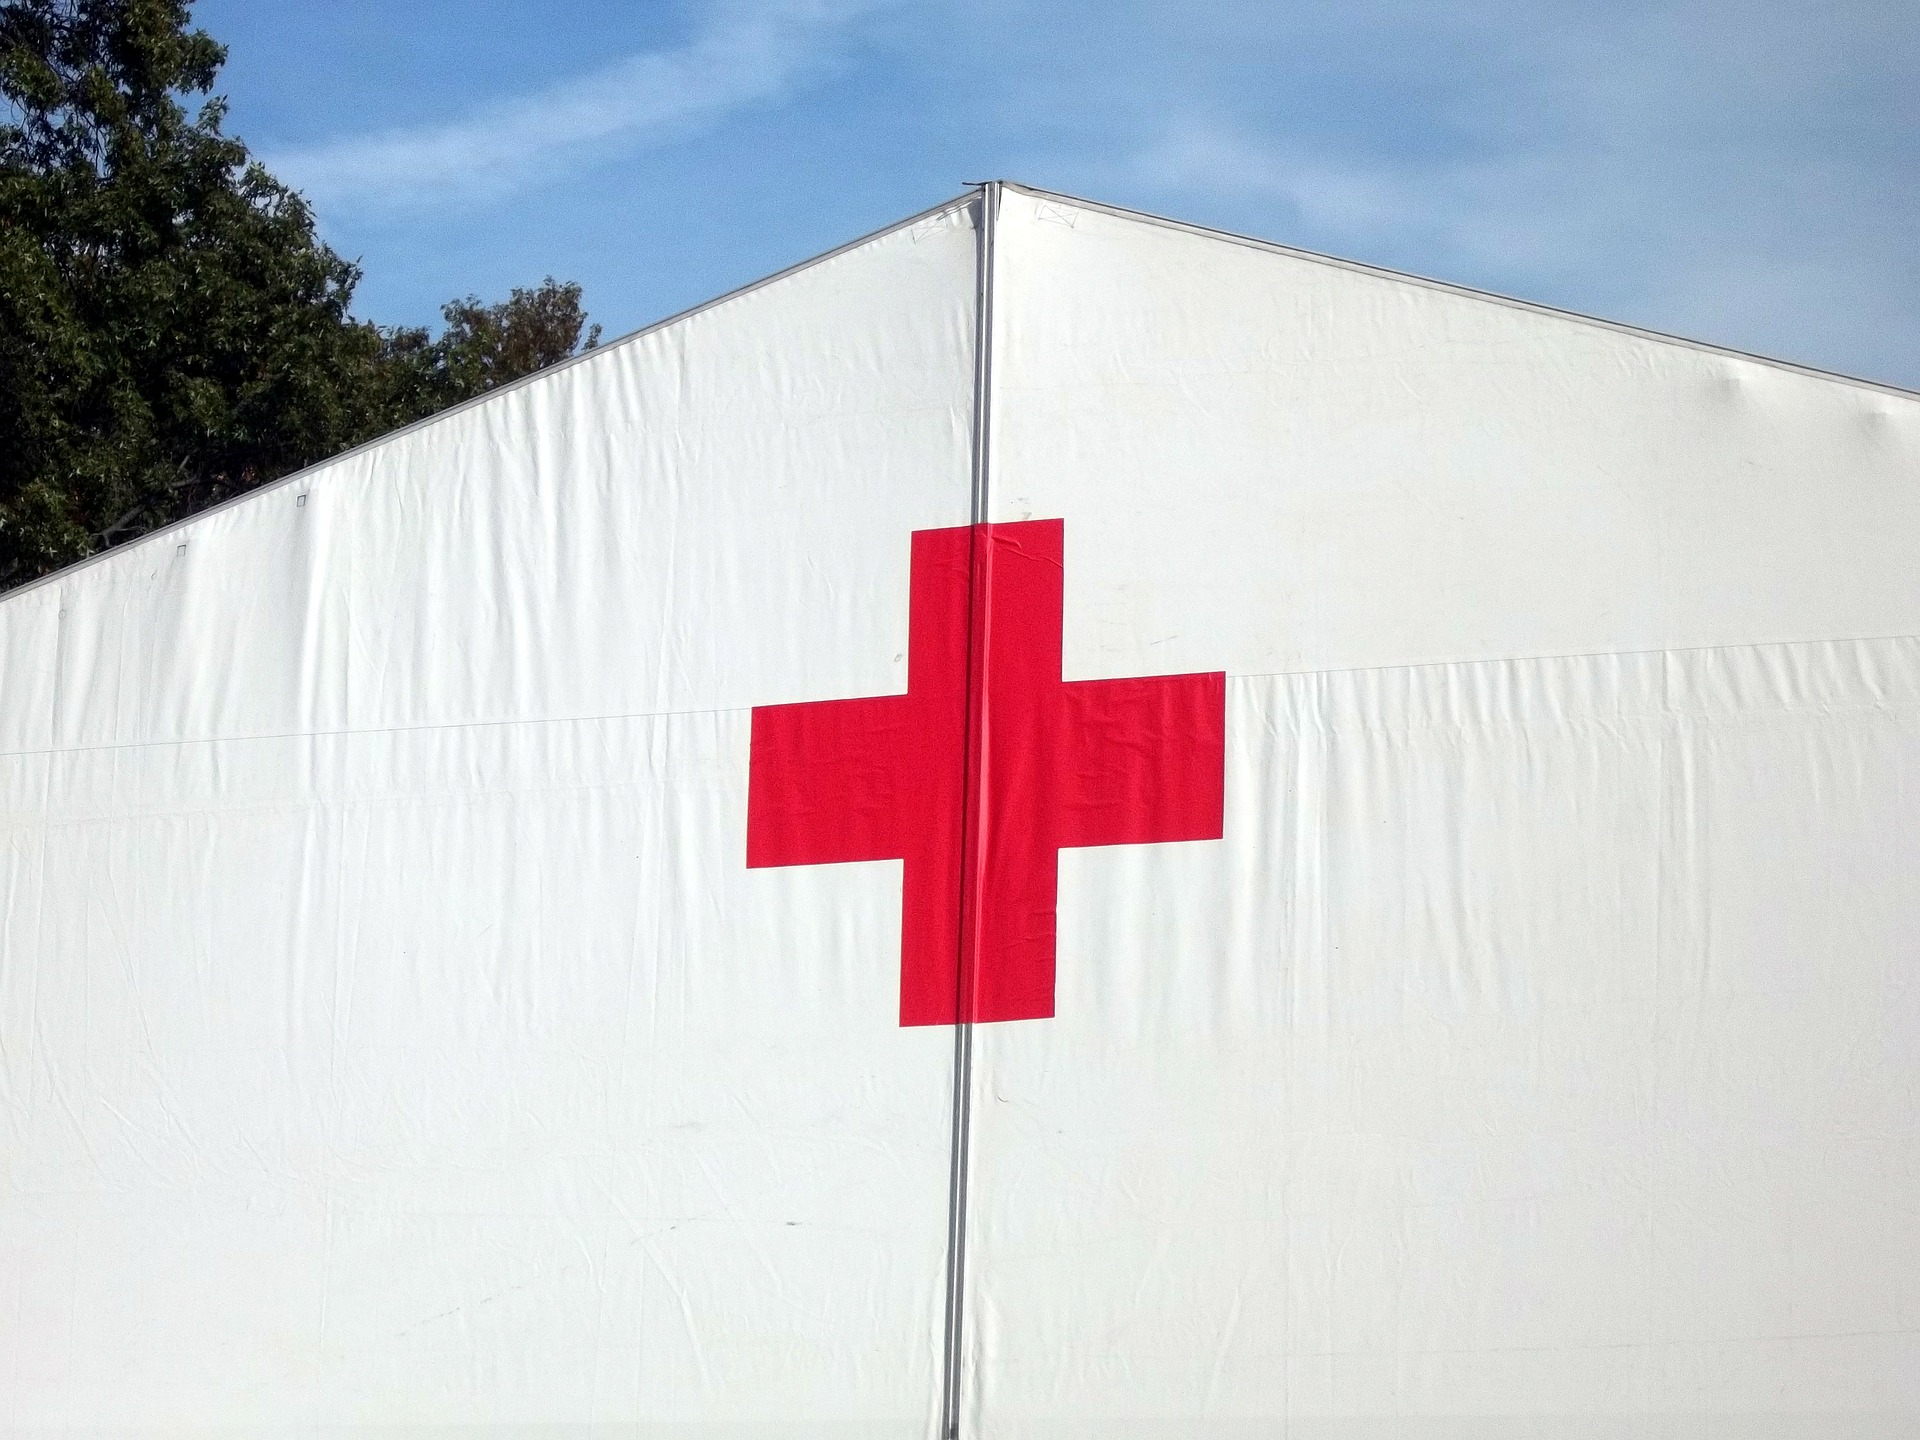 The American Red Cross – A Critical Disaster Response Organization